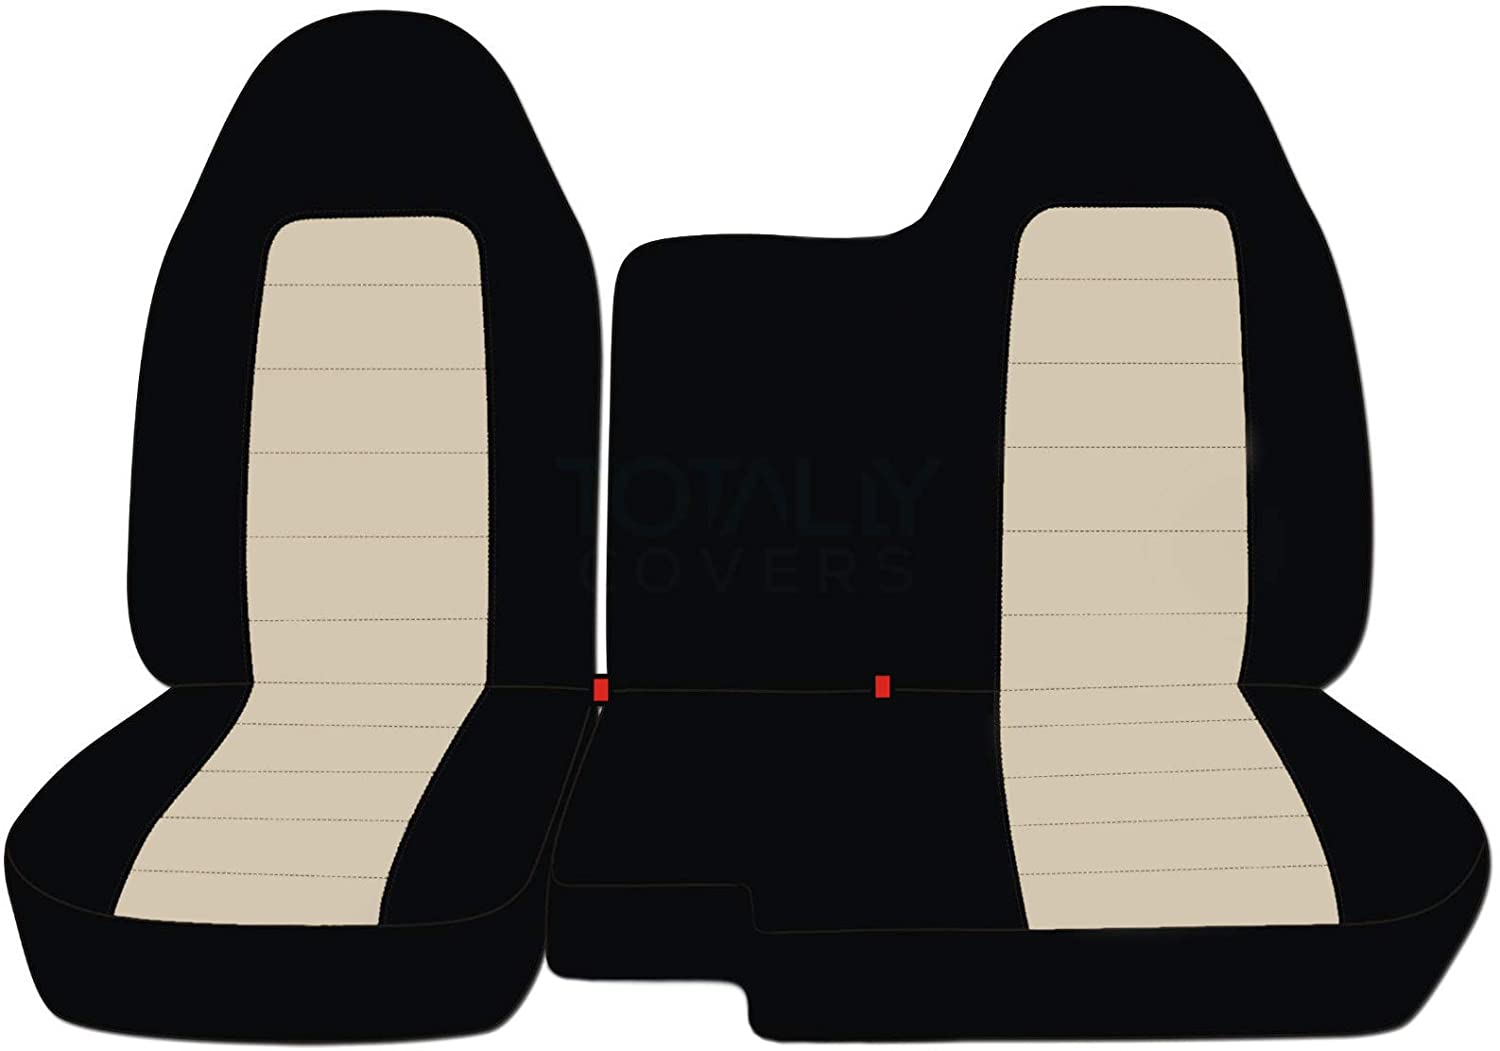 21 Colors No Armrest: Black and Gray Totally Covers Fits 2004-2012 Chevy Colorado//GMC Canyon Two-Tone Truck Seat Covers 2005 2006 2007 2008 2009 2010 2011 Chevrolet Front 60//40 Split Bench